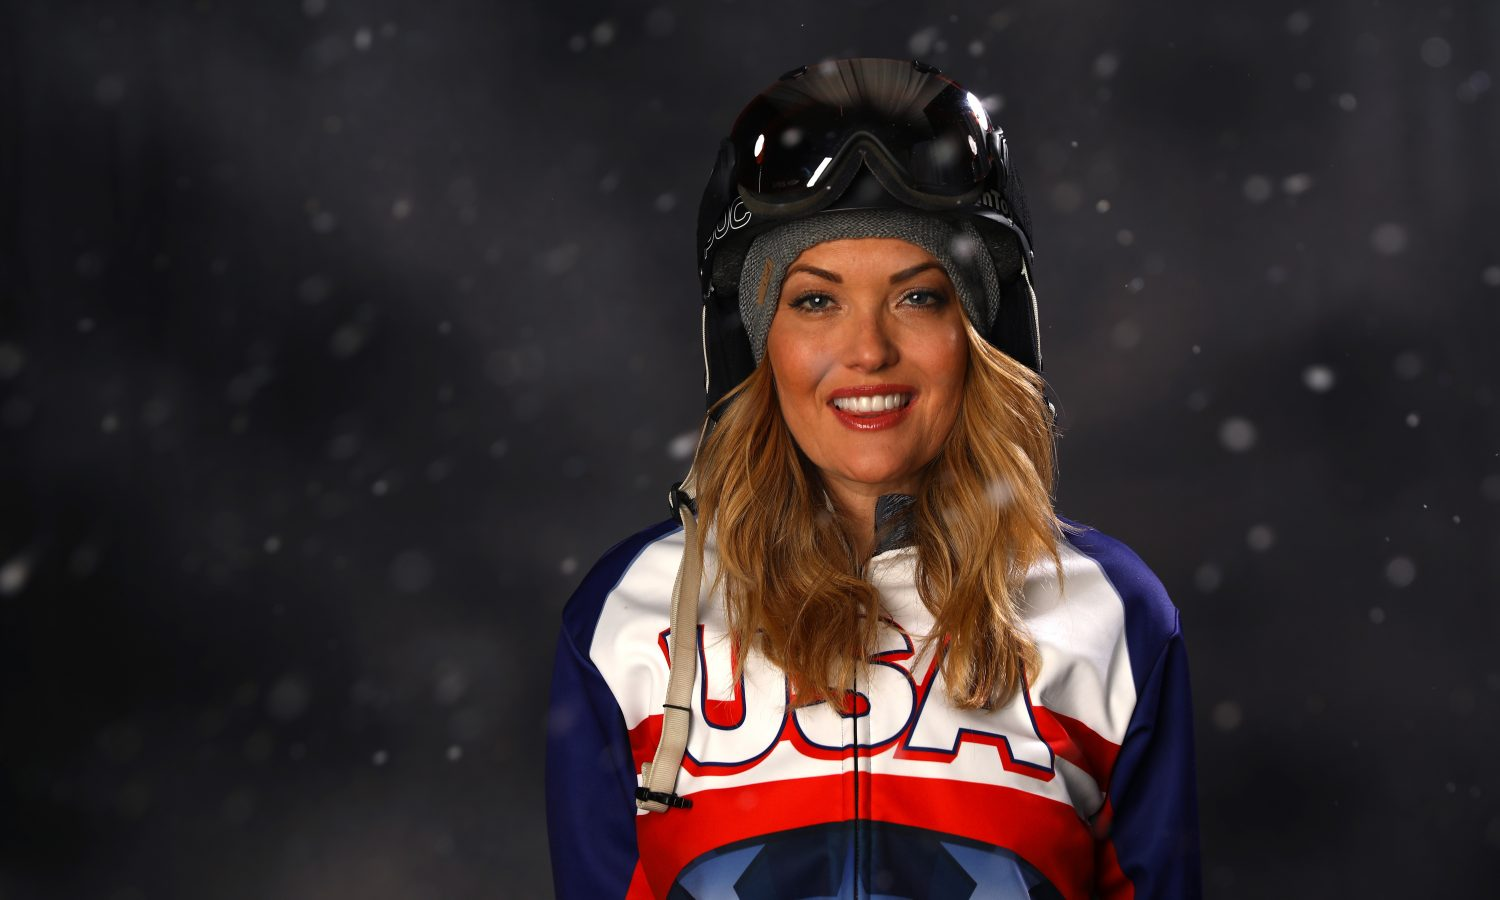 Team USA and Team Toyota athletes Oksana Masters, Amy Purdy and Evan Strong capture medals at Paralympic Winter Games